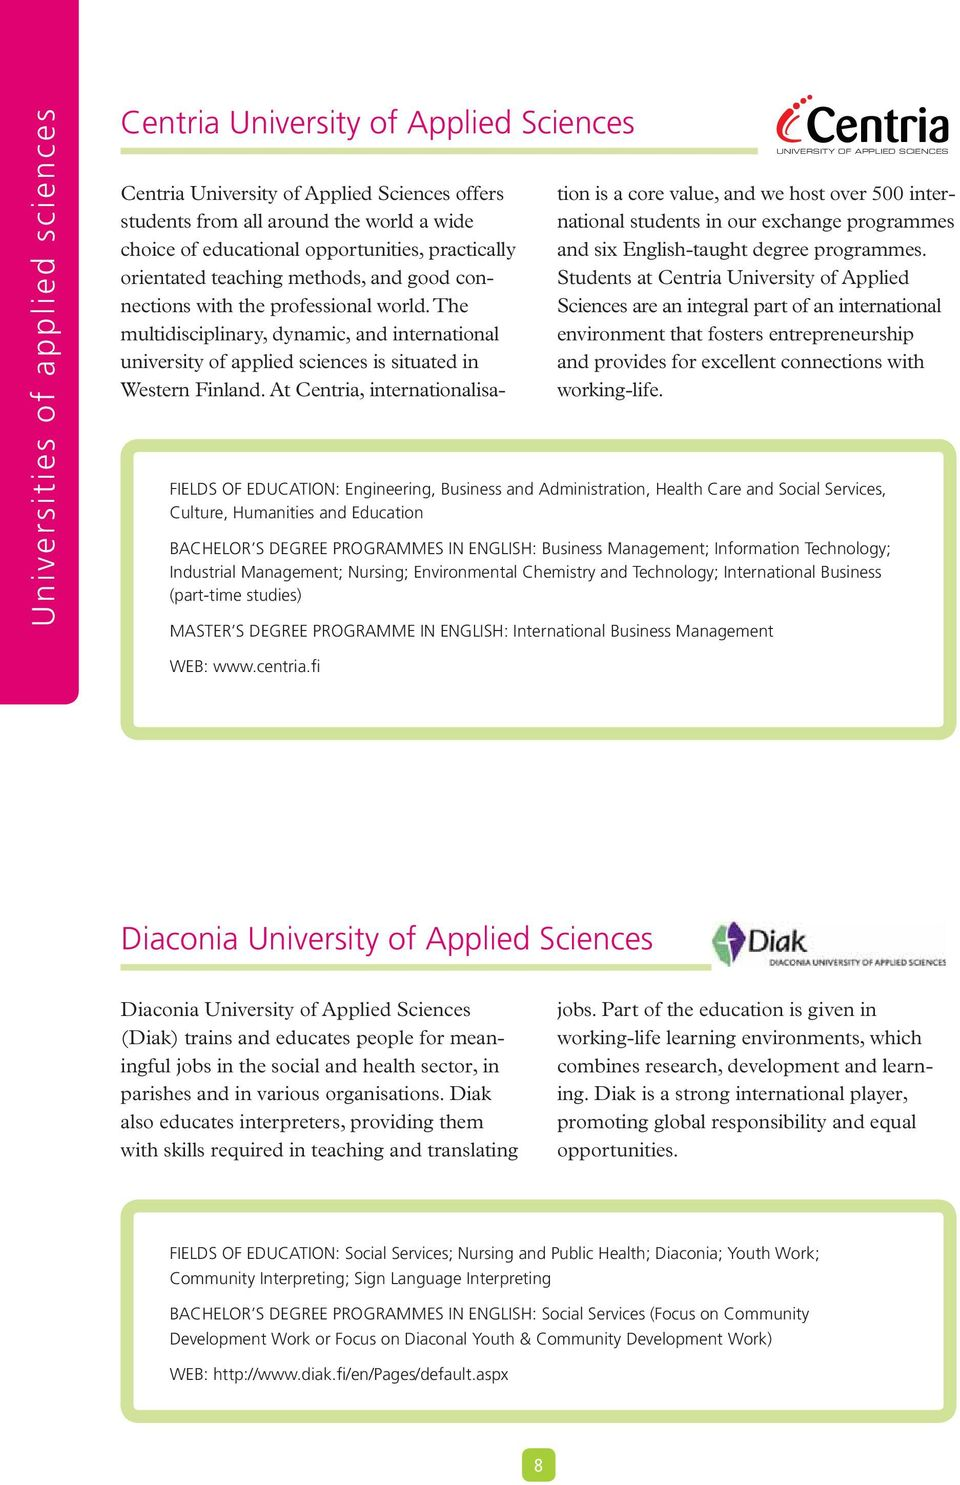 The multidisciplinary, dynamic, and international university of applied sciences is situated in Western Finland.